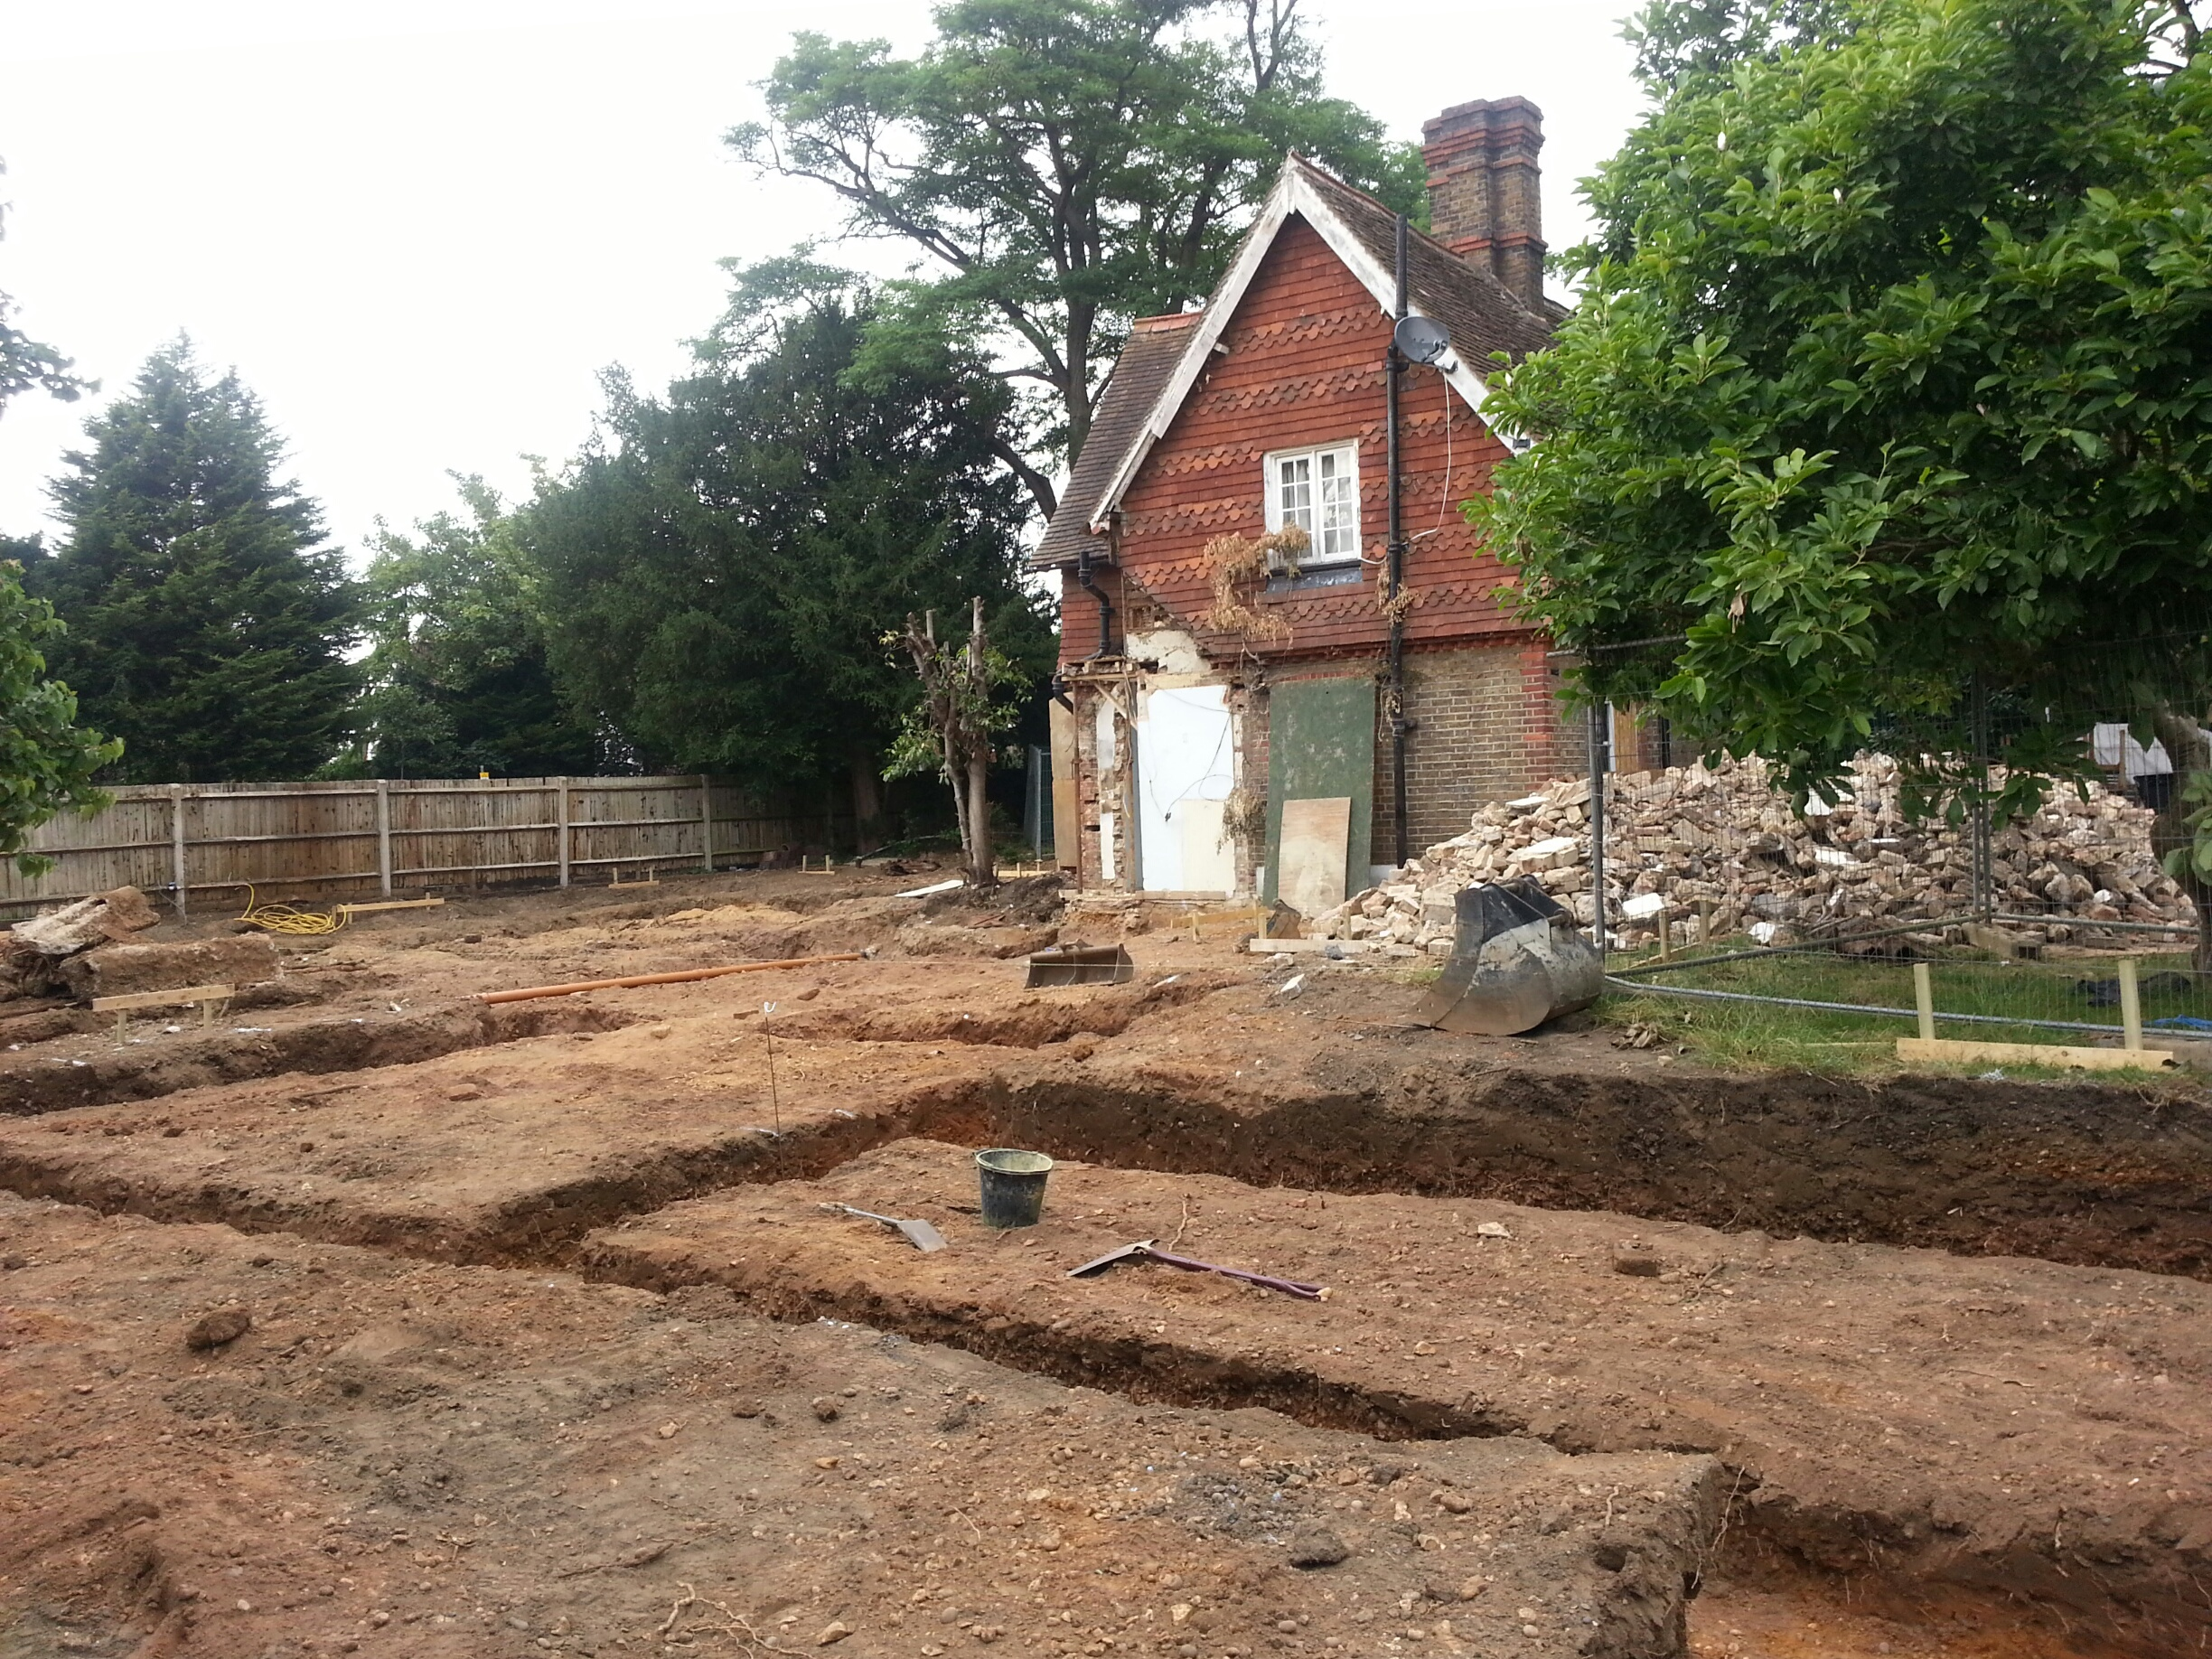 view of foundations and existing cottage